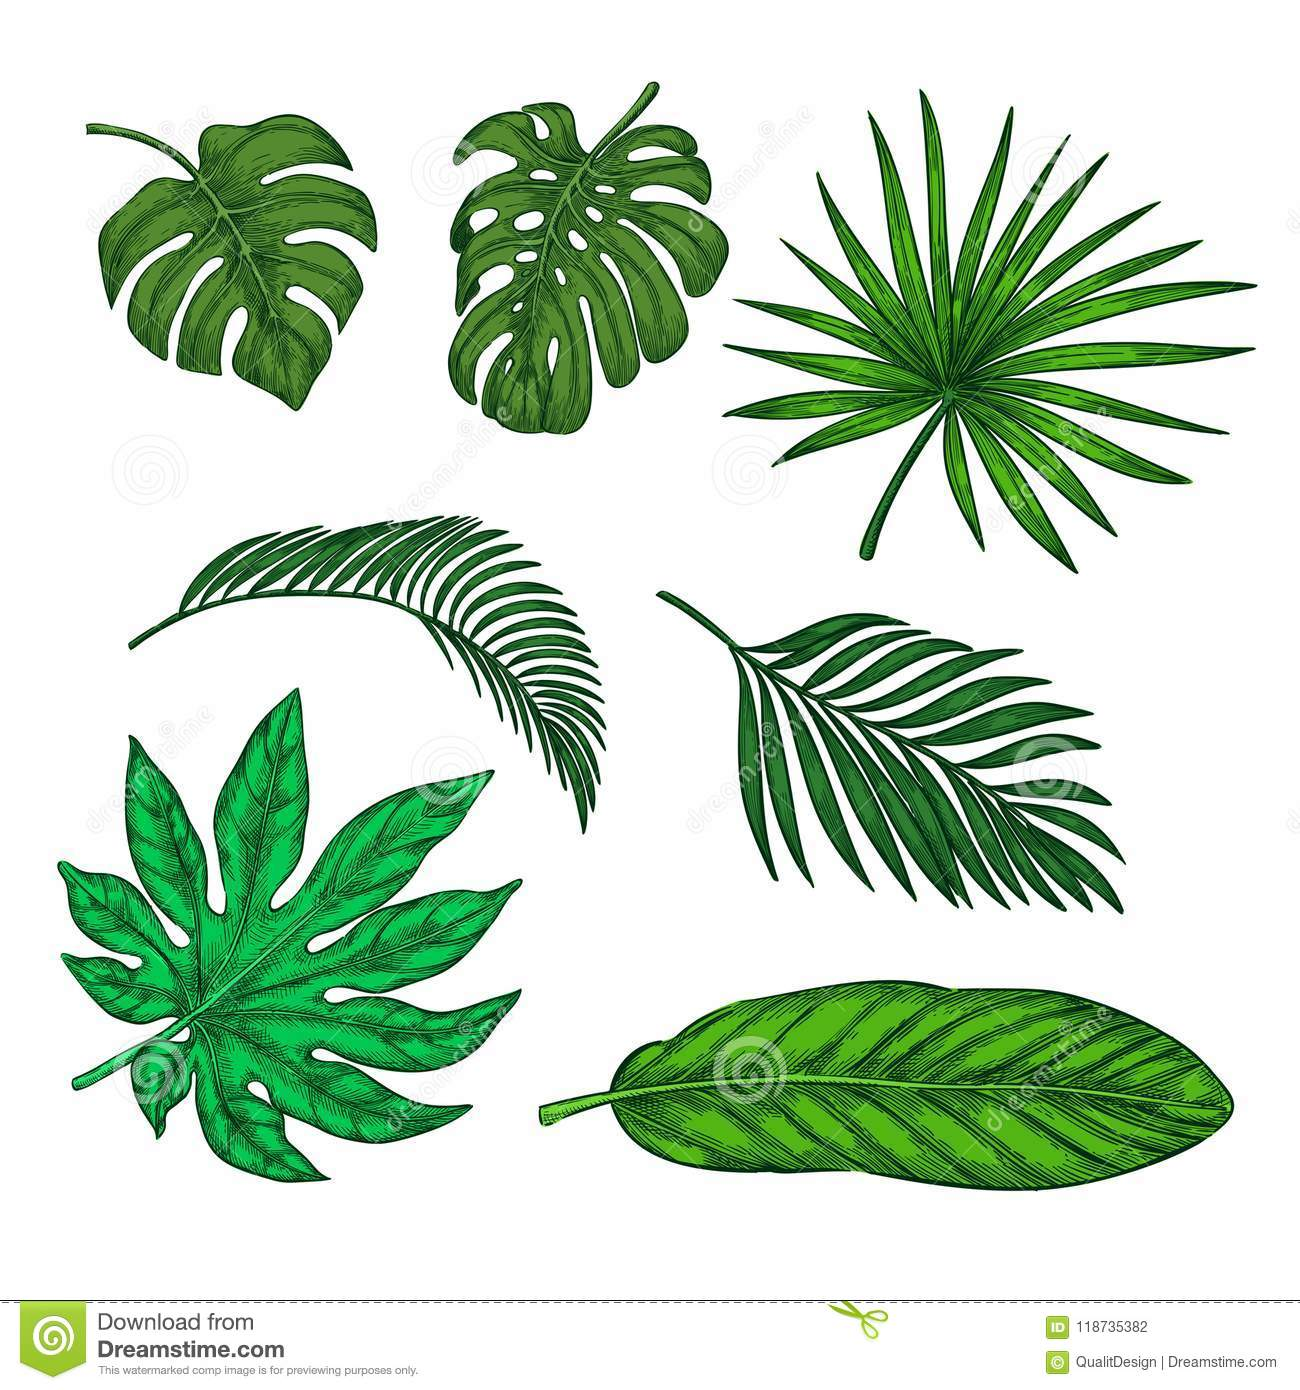 Tropical Green Palm Leaves Set Vector Sketch Illustration Hand Drawn Tropic Nature And Floral Design Elements Stock Vector Illustration Of Sketch Drawing 118735382 Sketch composition with tropical leaves stock vector. https www dreamstime com tropical green palm leaves set vector sketch illustration hand drawn tropic nature floral design elements image118735382